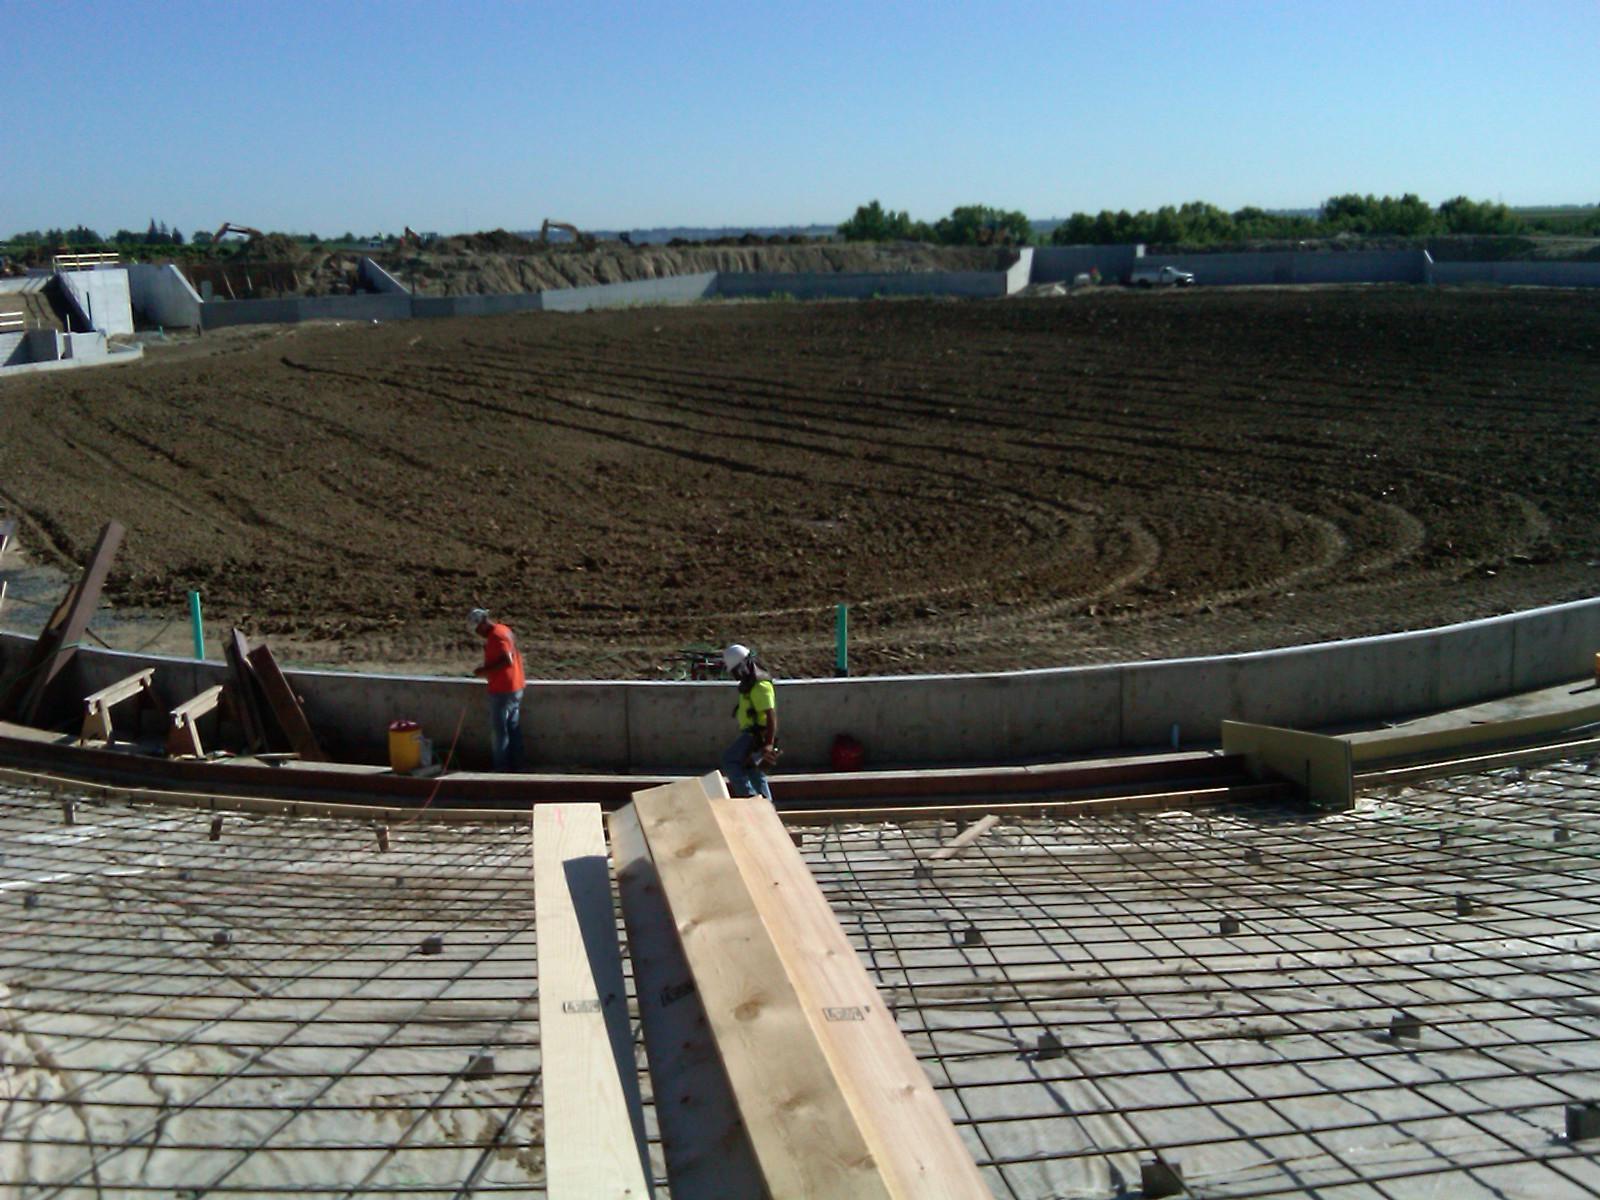 Werner Park construction, 2009-2010